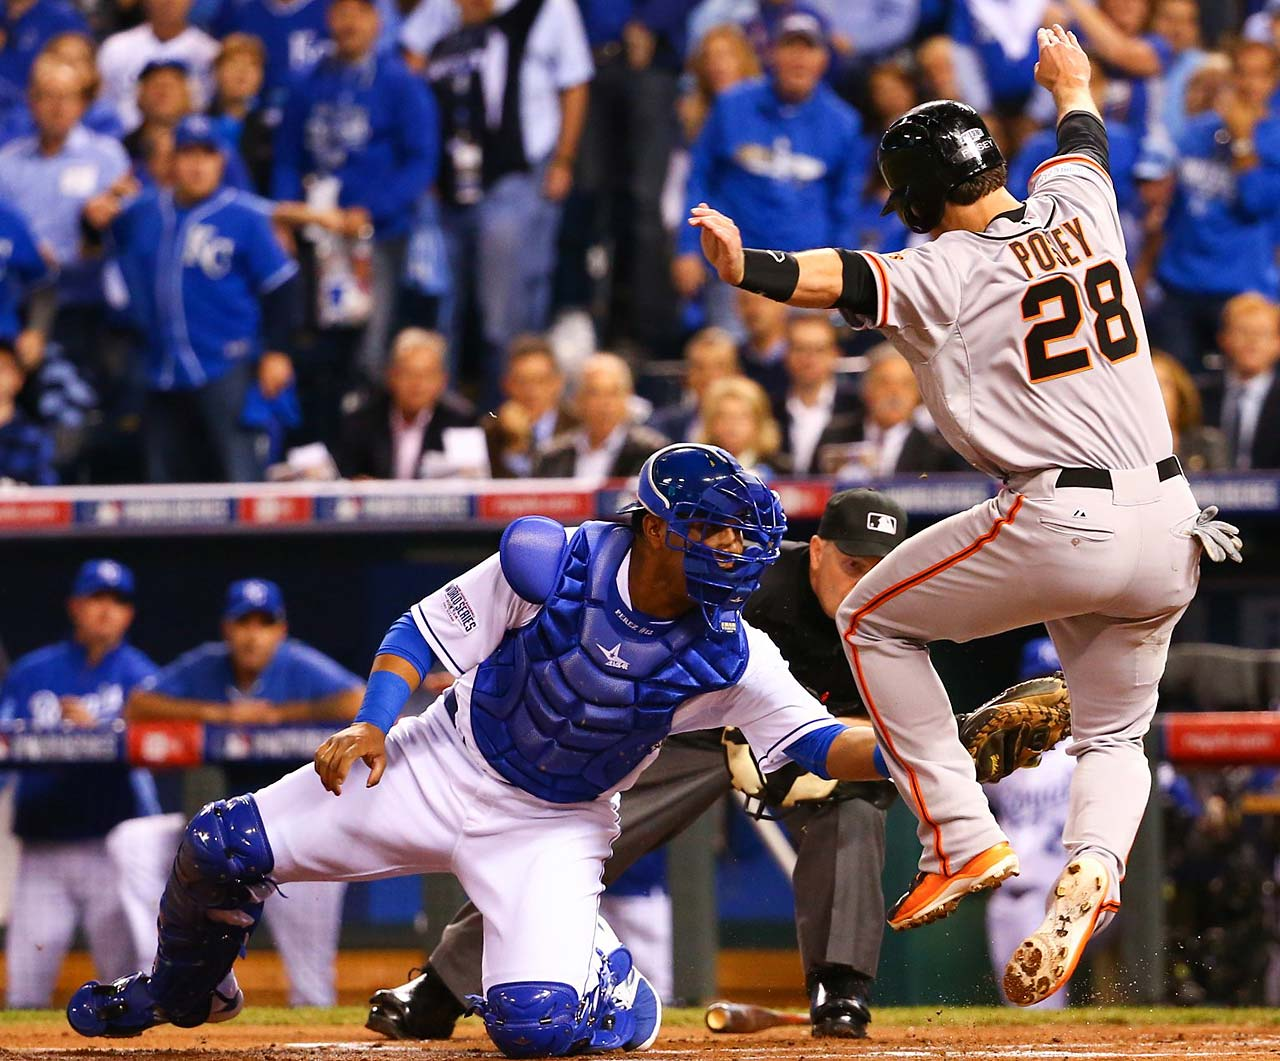 Buster Posey is tagged out by Salvador Perez while trying to score on a Pablo Sandoval double.